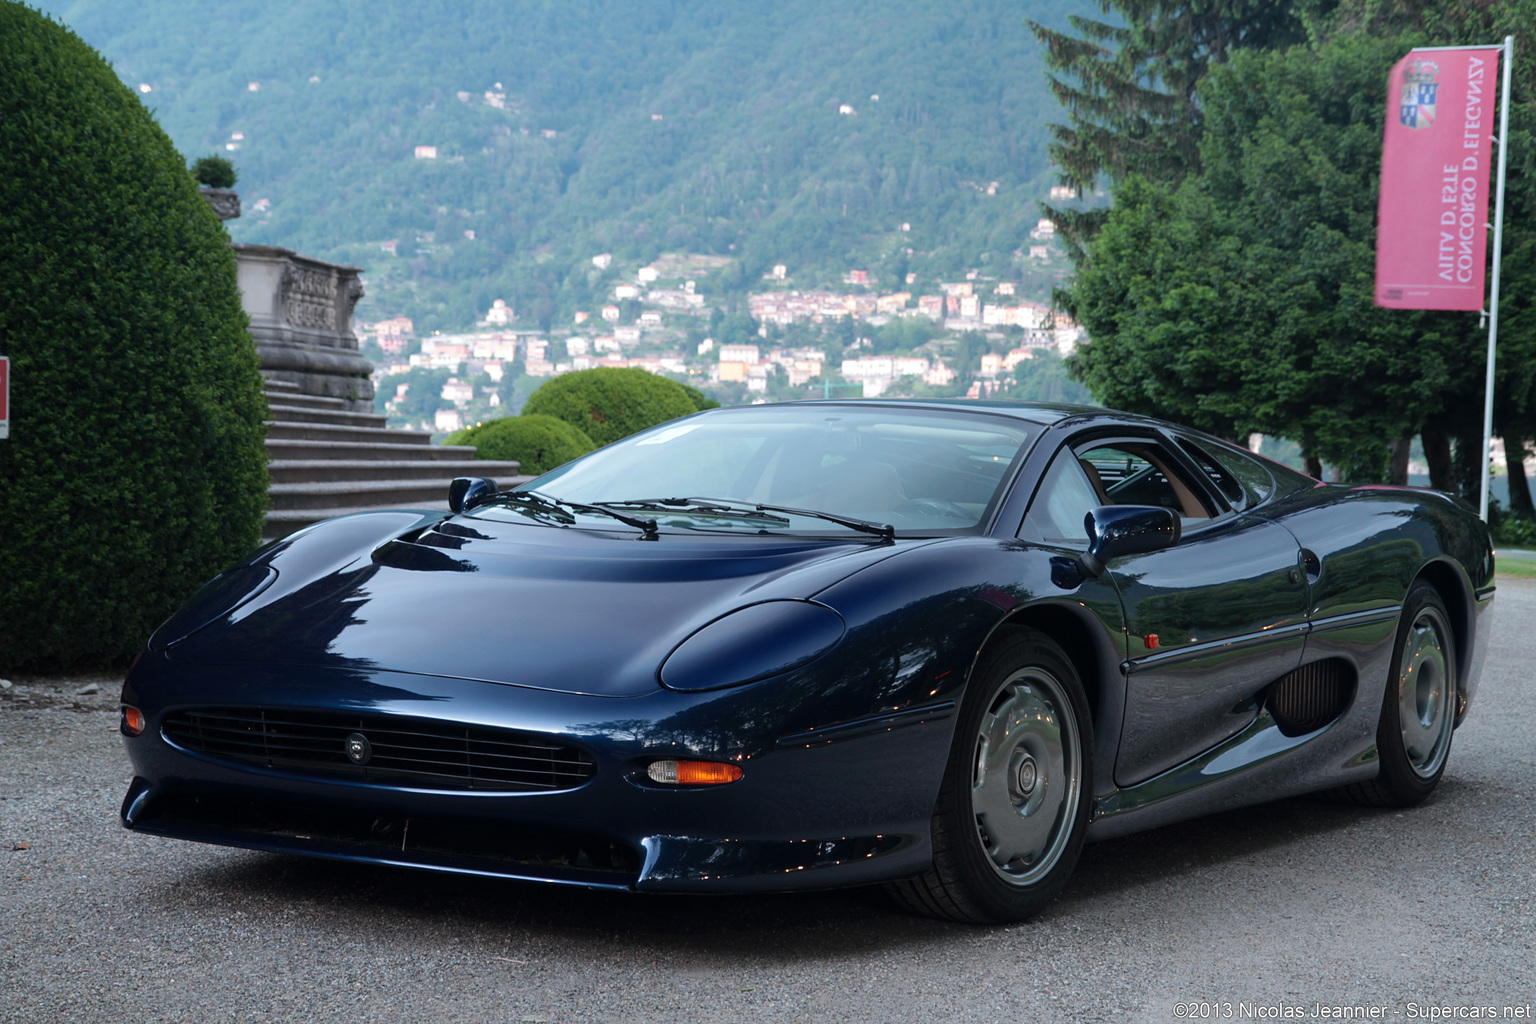 See The Jaguar XJ220 Image Gallery. See More Jaguar Cars And Watch Awesome  Jaguar Videos.